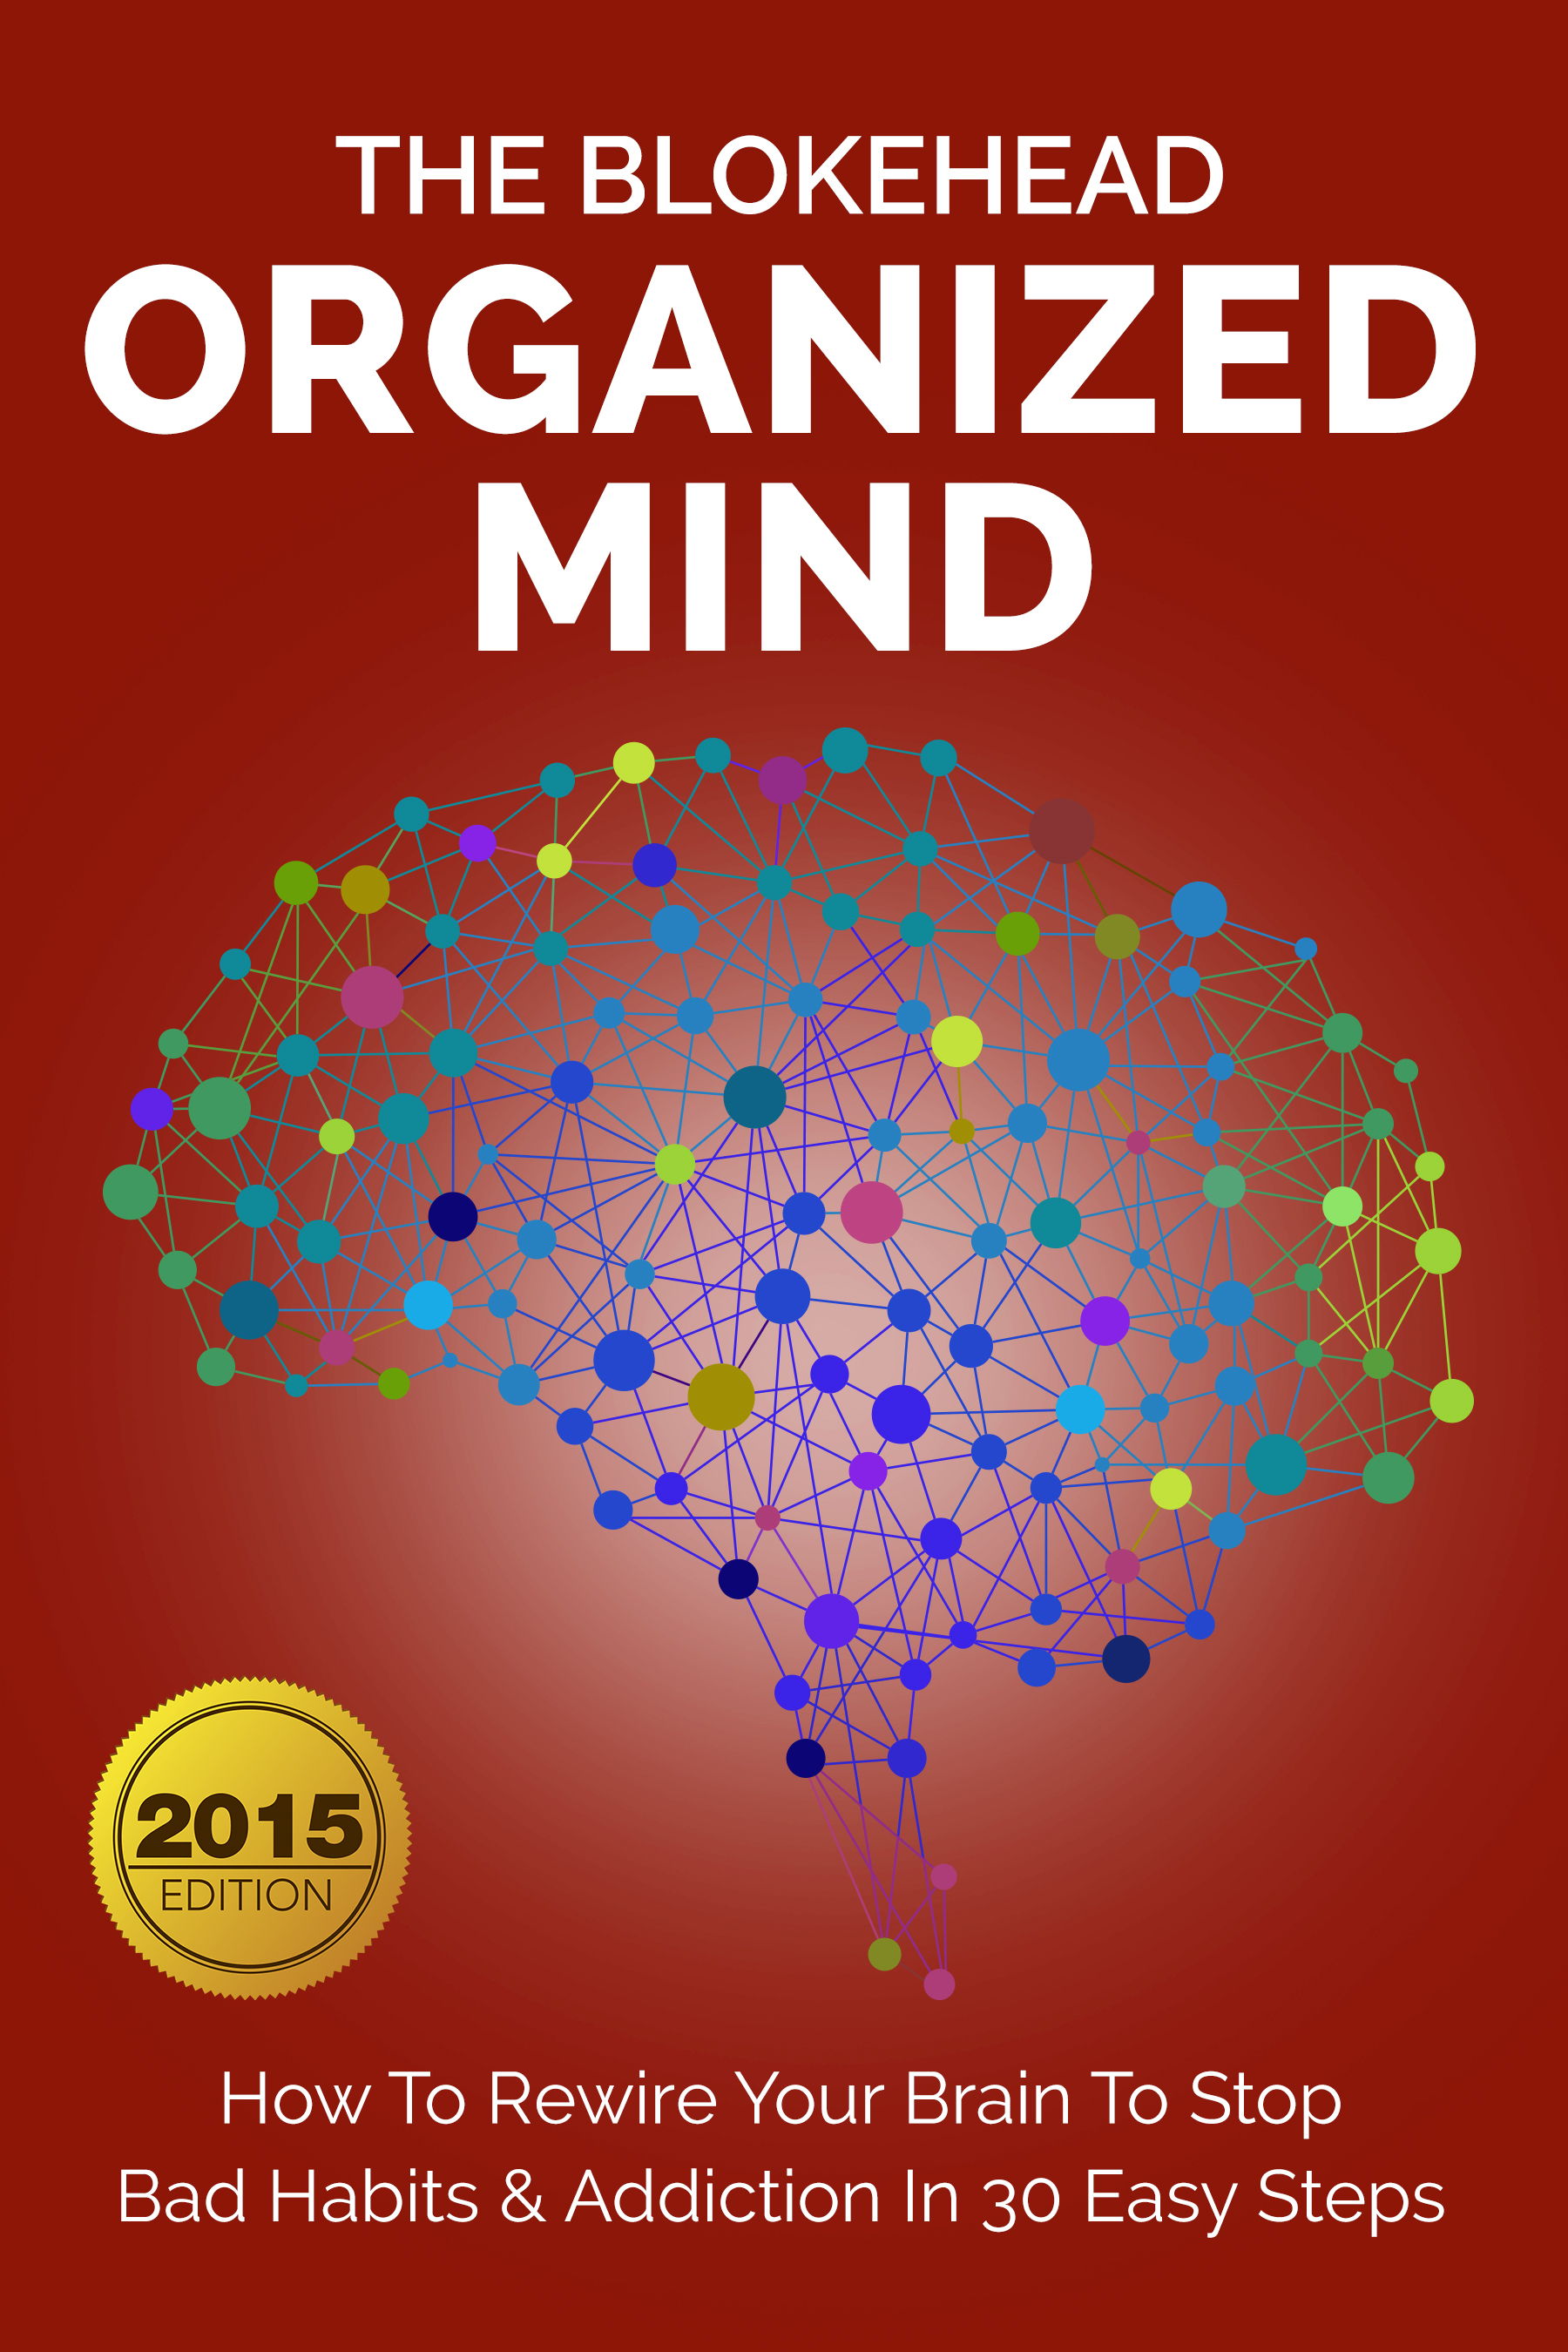 Organized mind : how to rewire your brain to stop bad habits & addiction in 30 easy steps